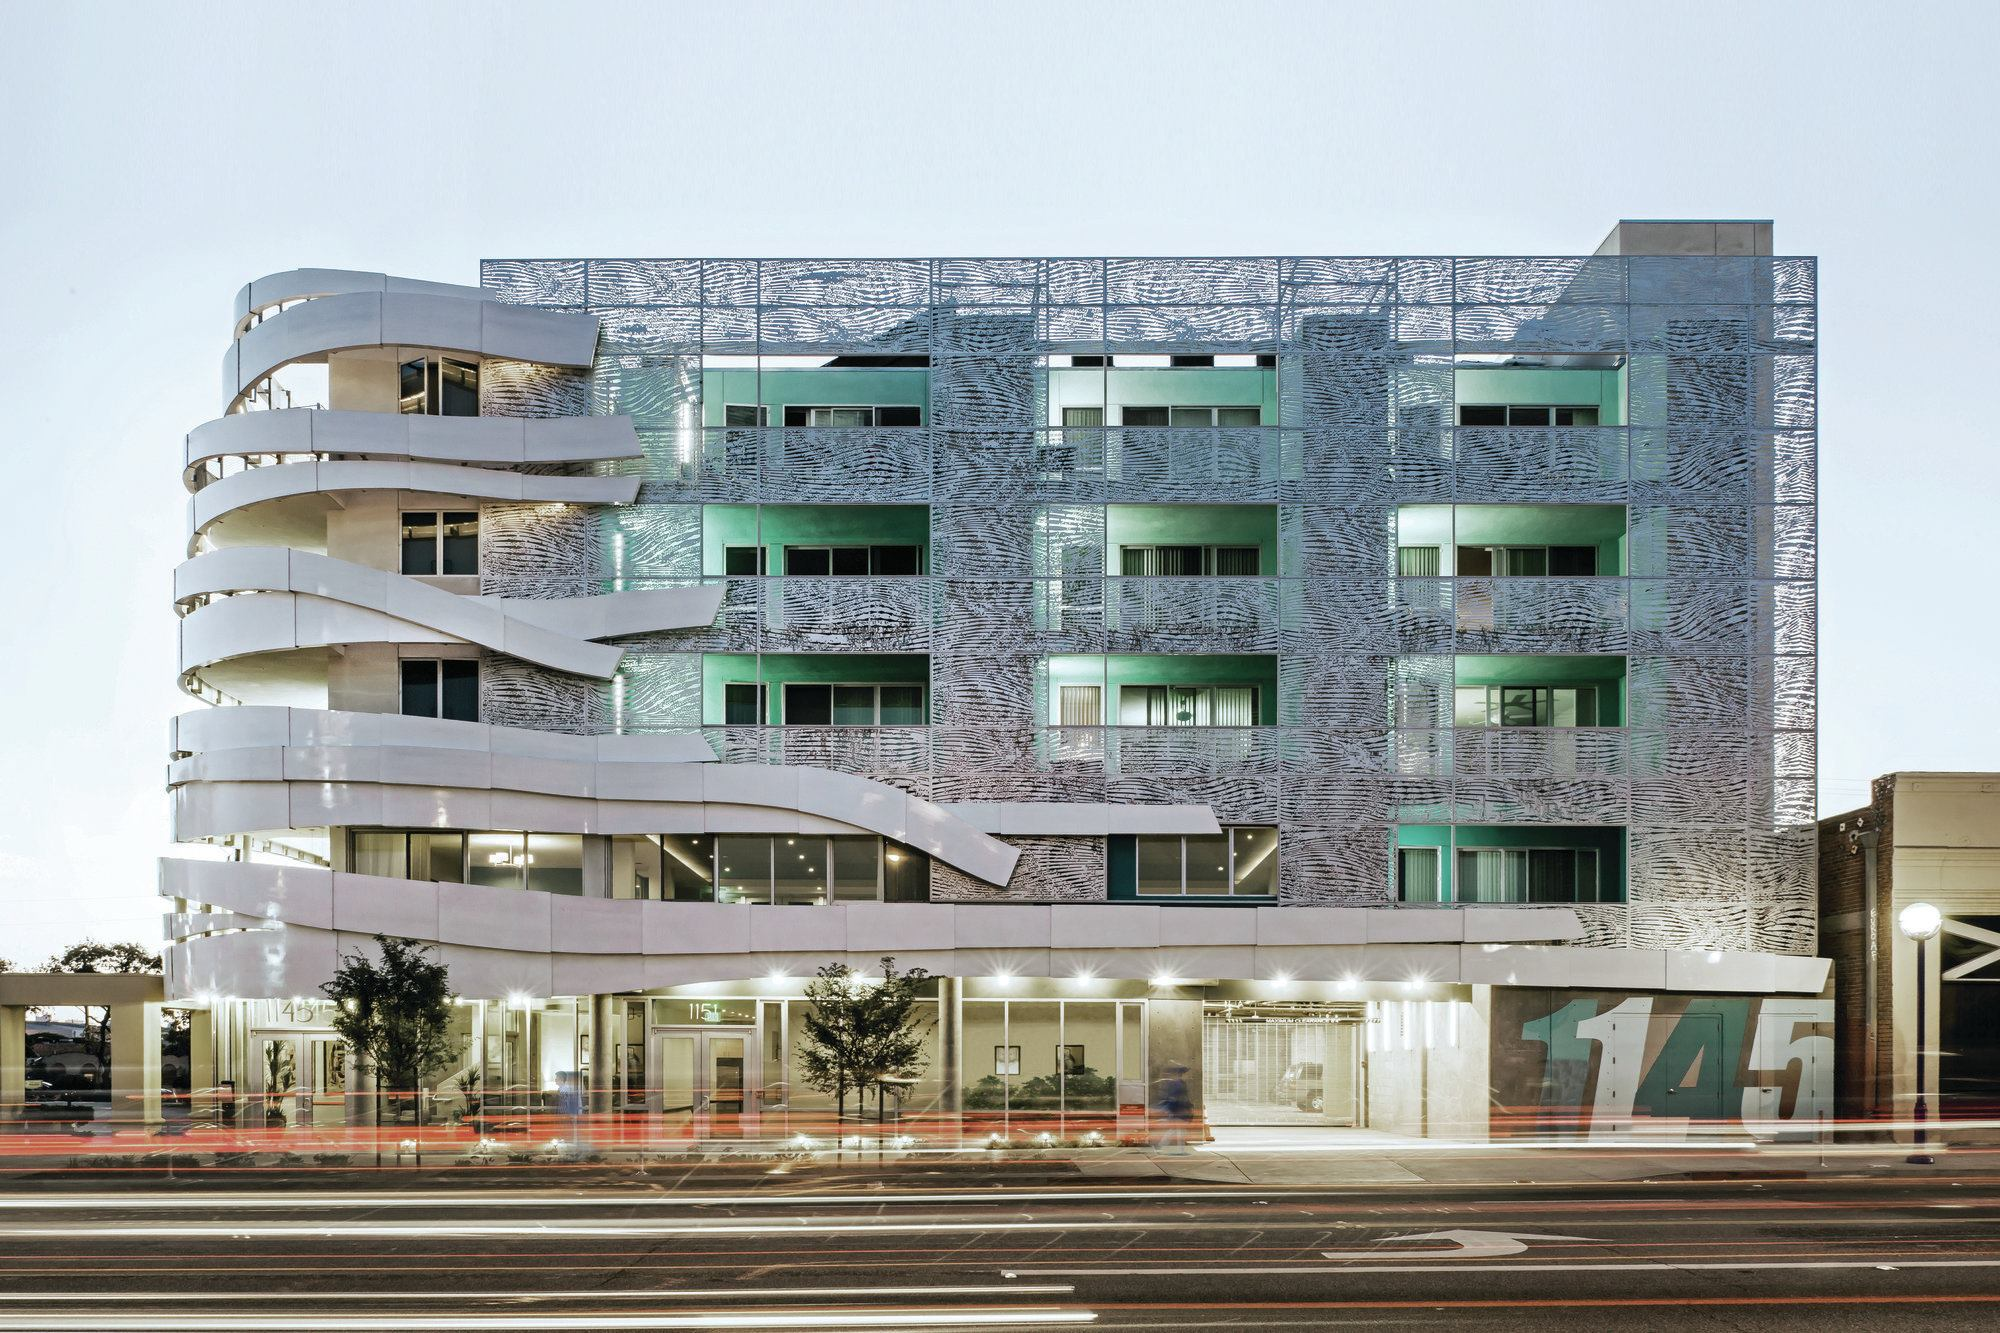 La Brea Housing Designed By Patrick Tighe Architecture